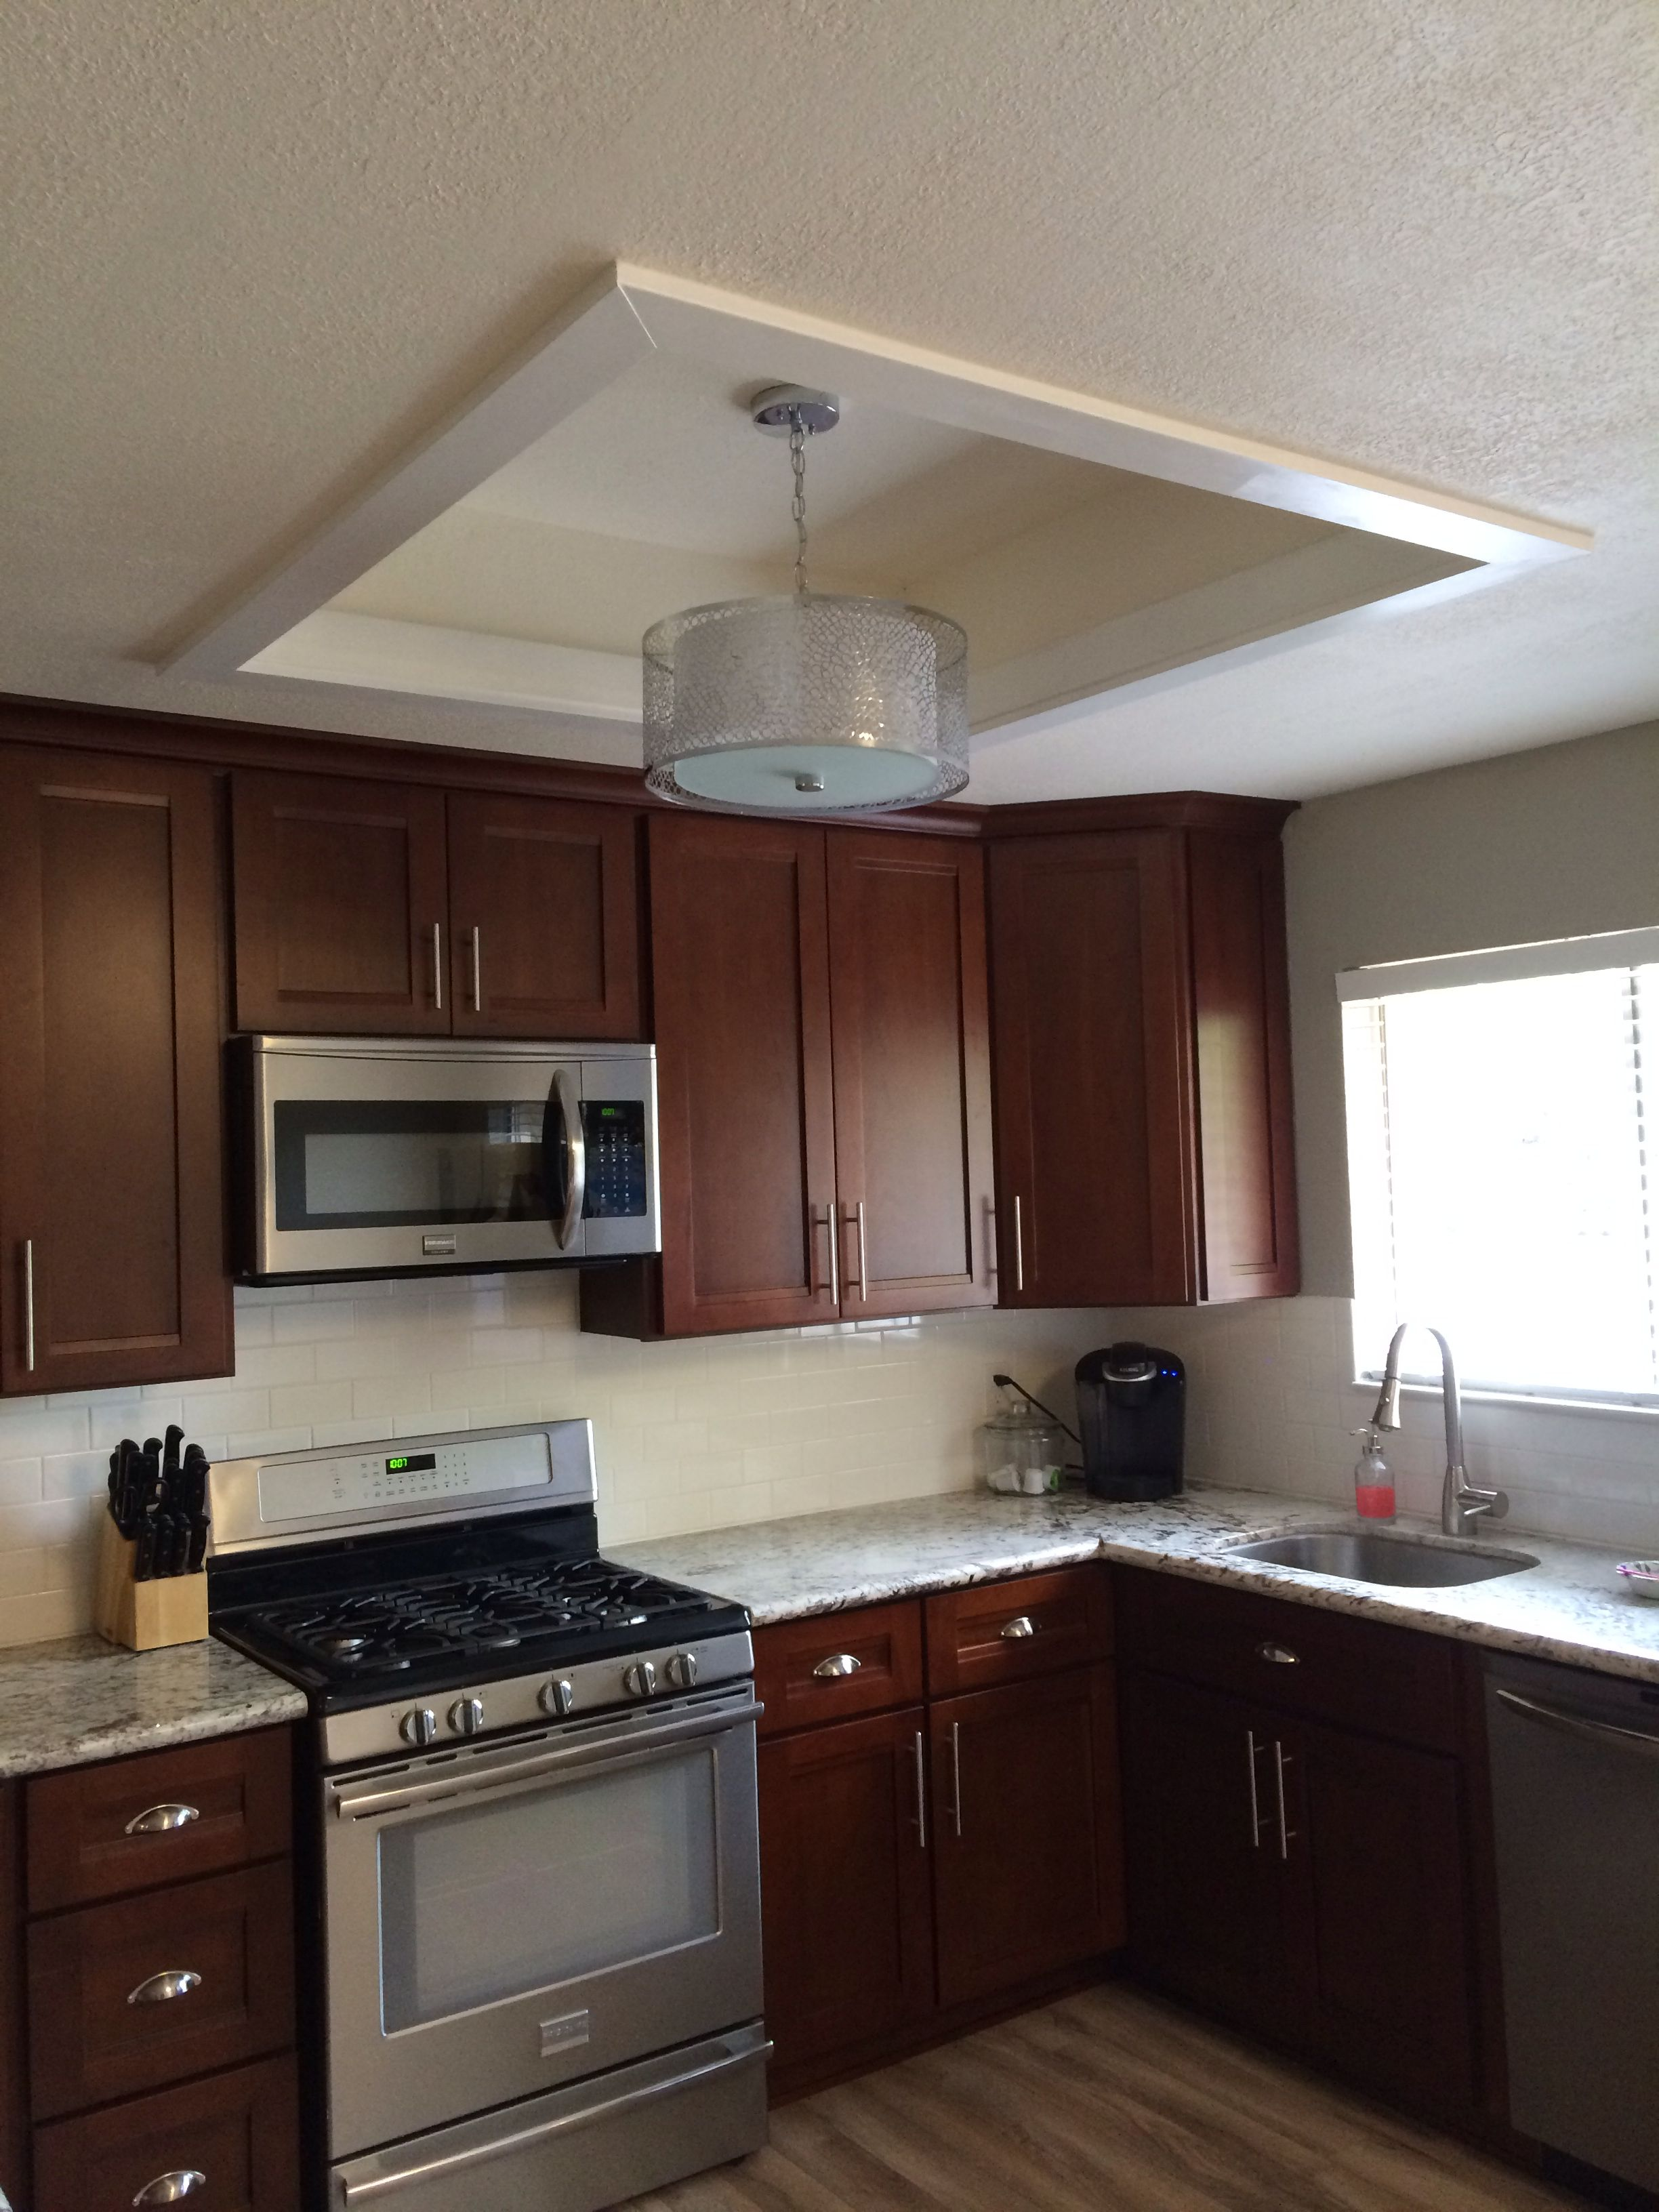 kitchen ceiling fixtures temporary fluorescent light box makeover building a nest in 2019